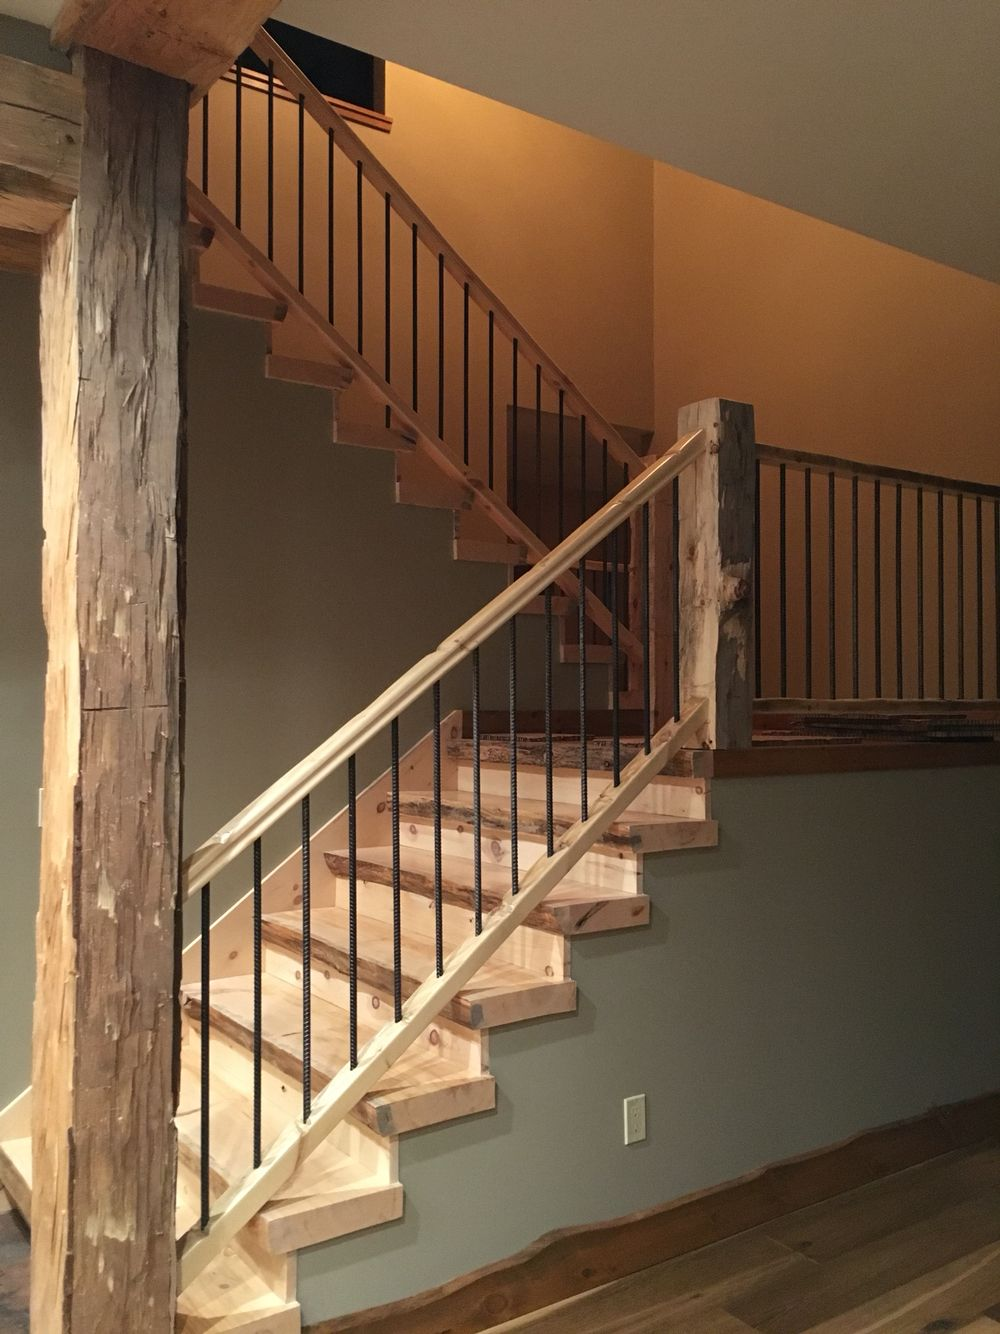 Stairwell Rustic Design using 5 Balusters. All material